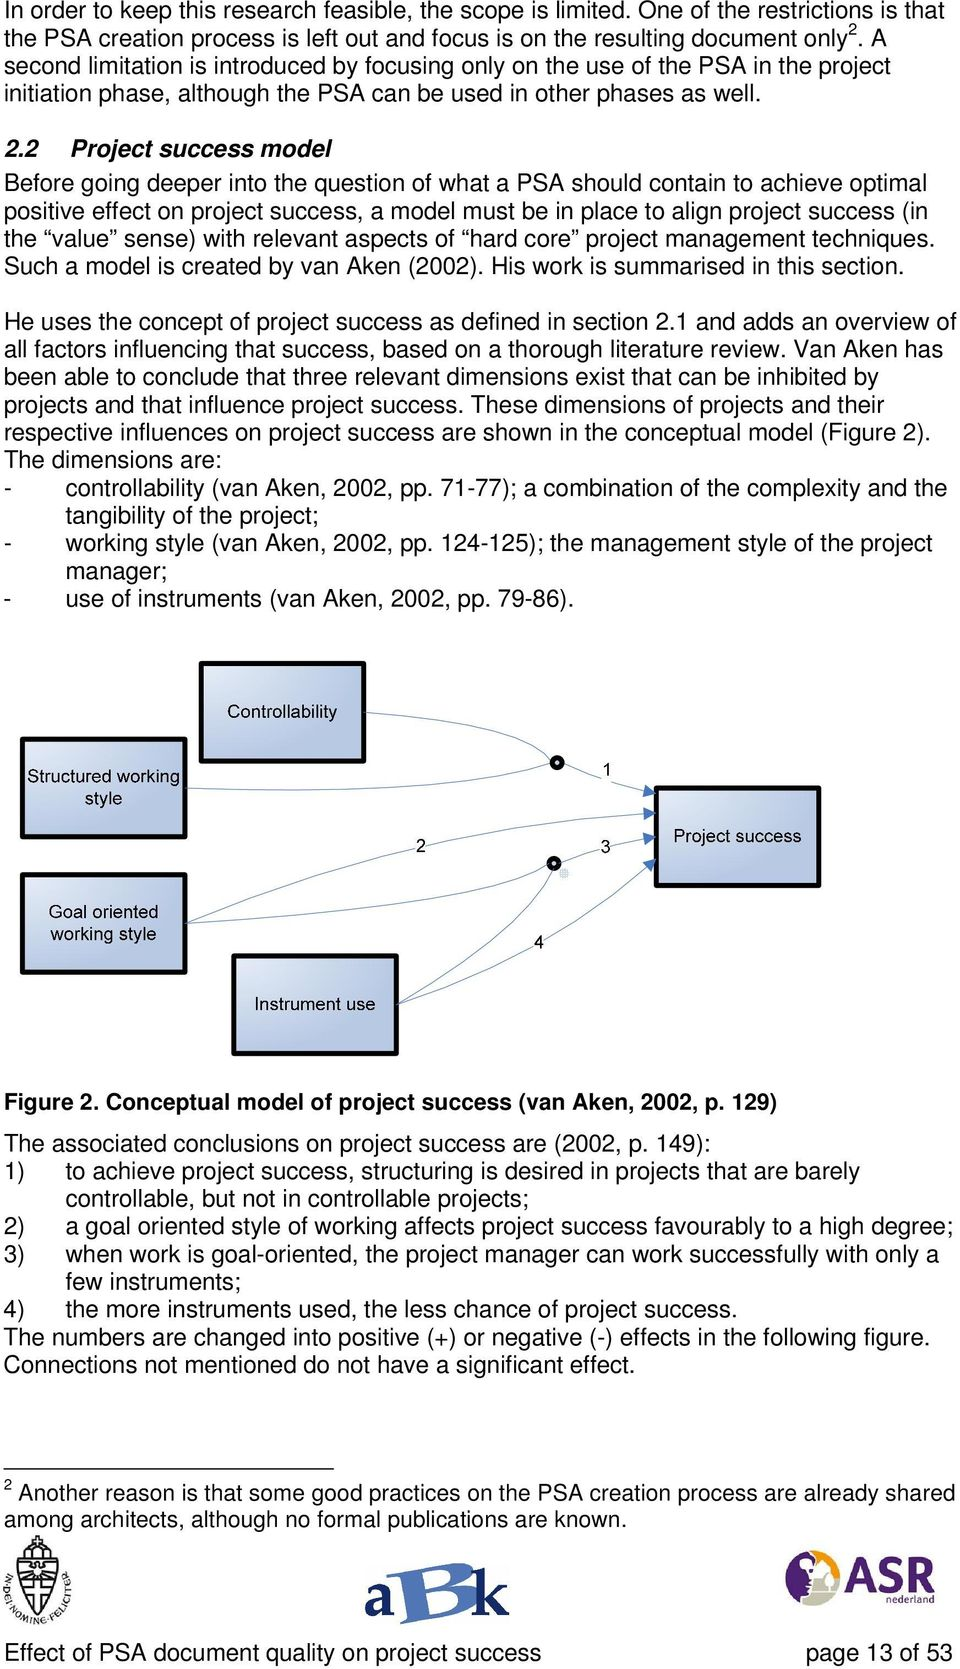 2 Project success model Before going deeper into the question of what a PSA should contain to achieve optimal positive effect on project success, a model must be in place to align project success (in